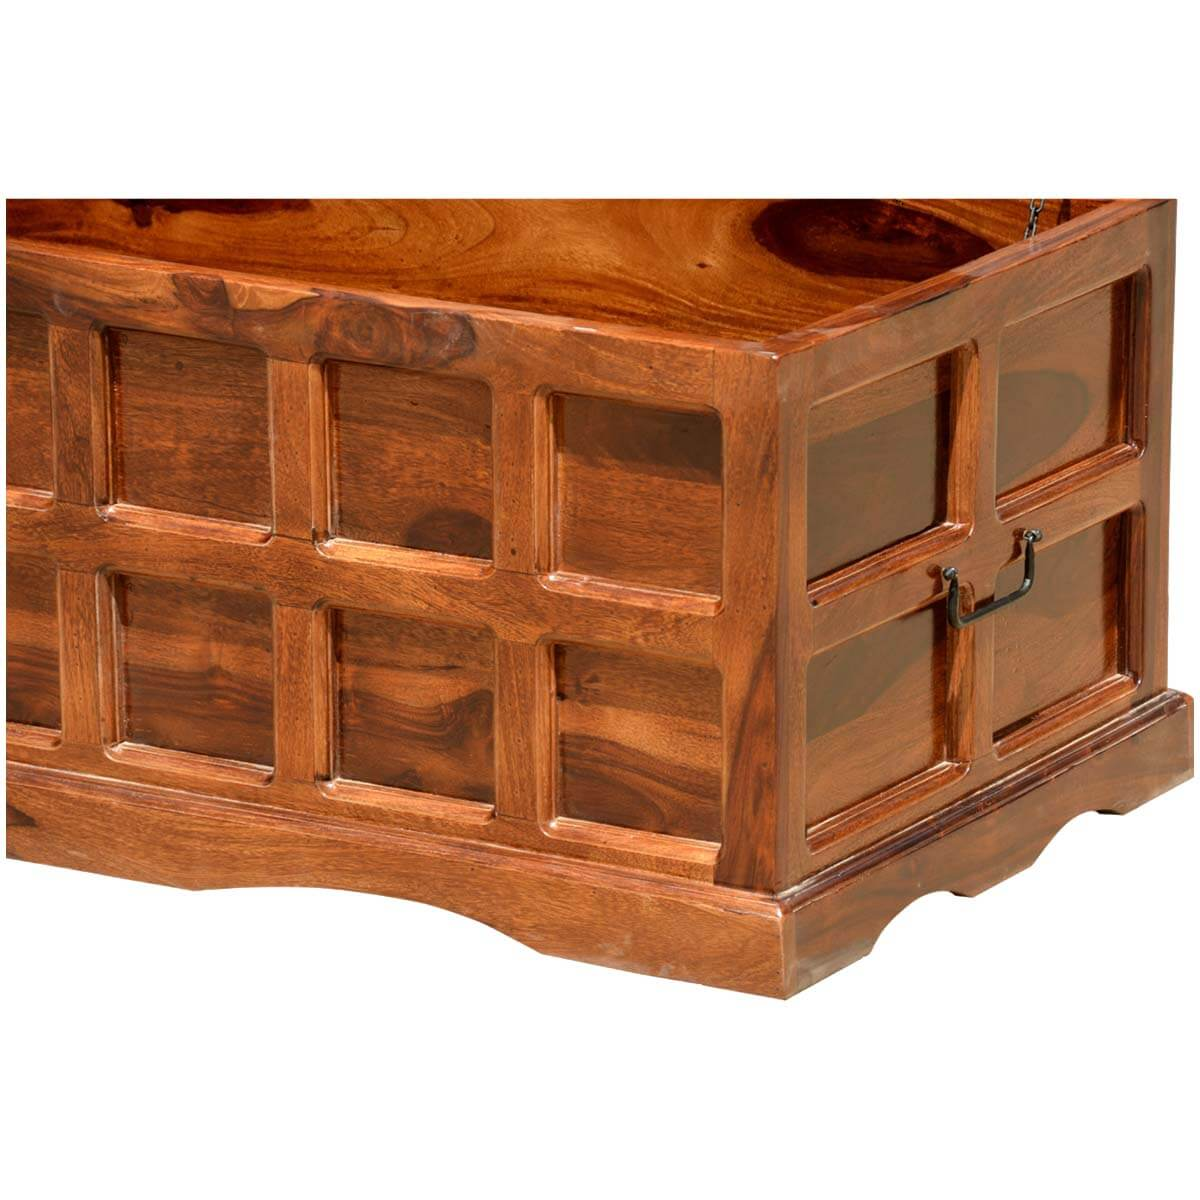 Wood Coffee Table With Storage Solid Wood Handmade Traditional Coffee Table Storage Box Chest